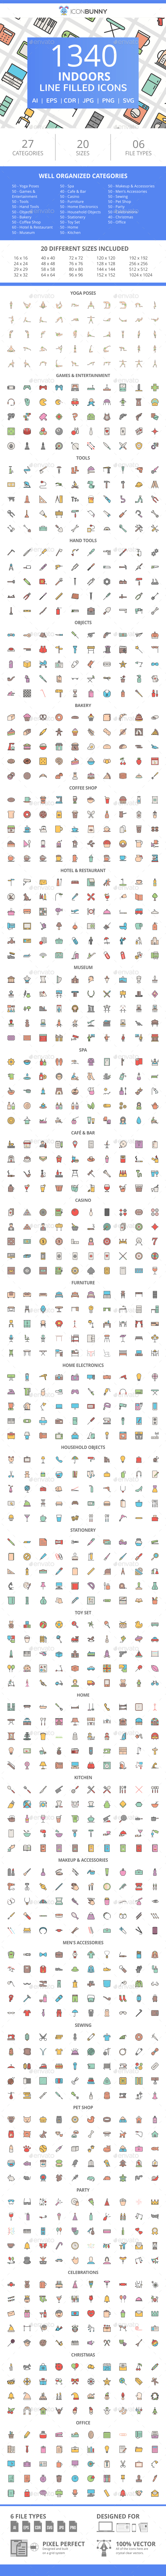 1340 Indoors Filled Line Icons - Icons